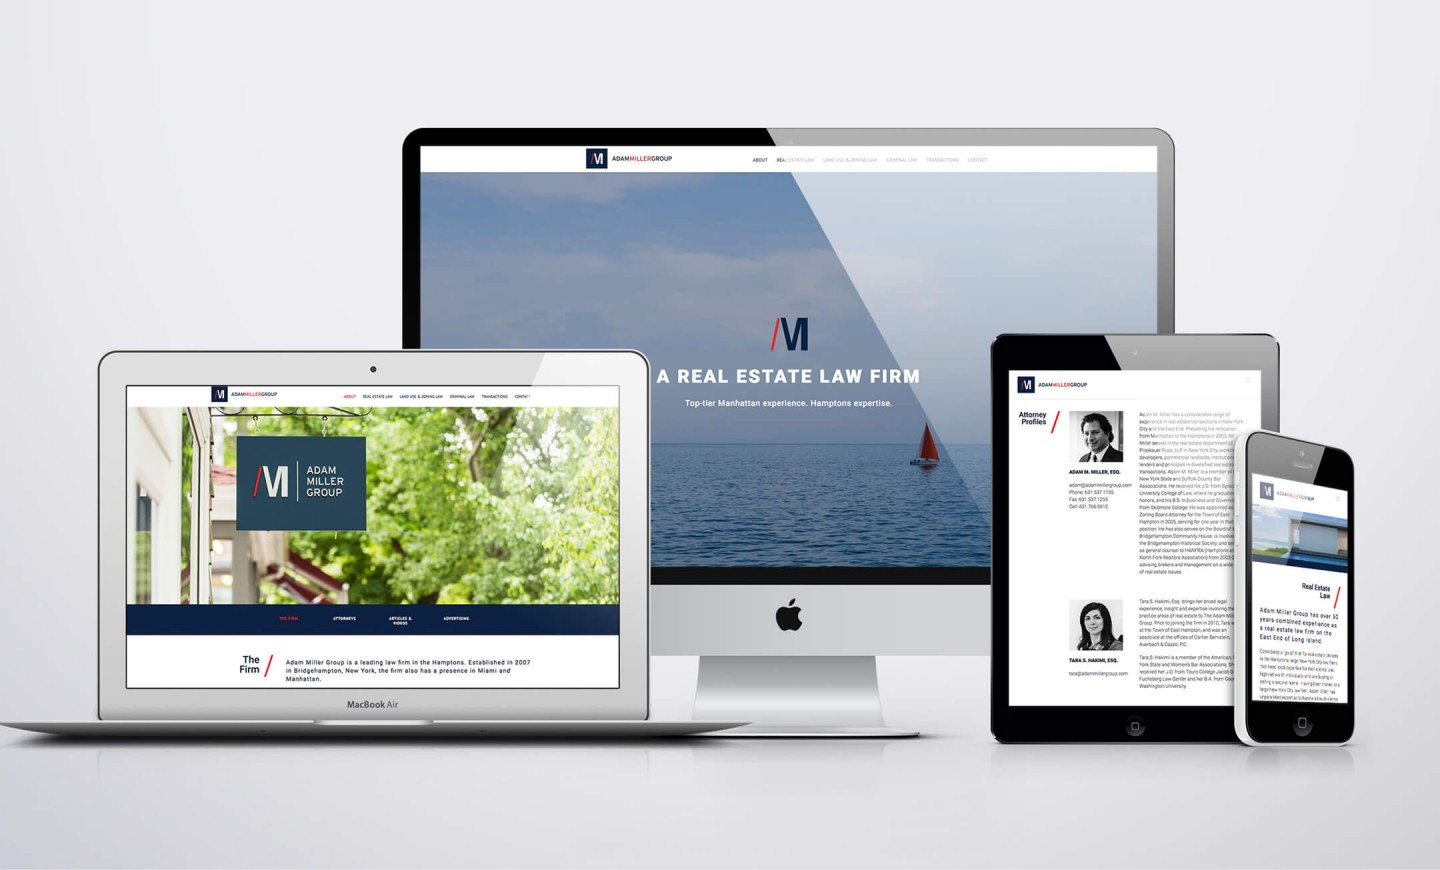 Adam Miller Group responsive website design views